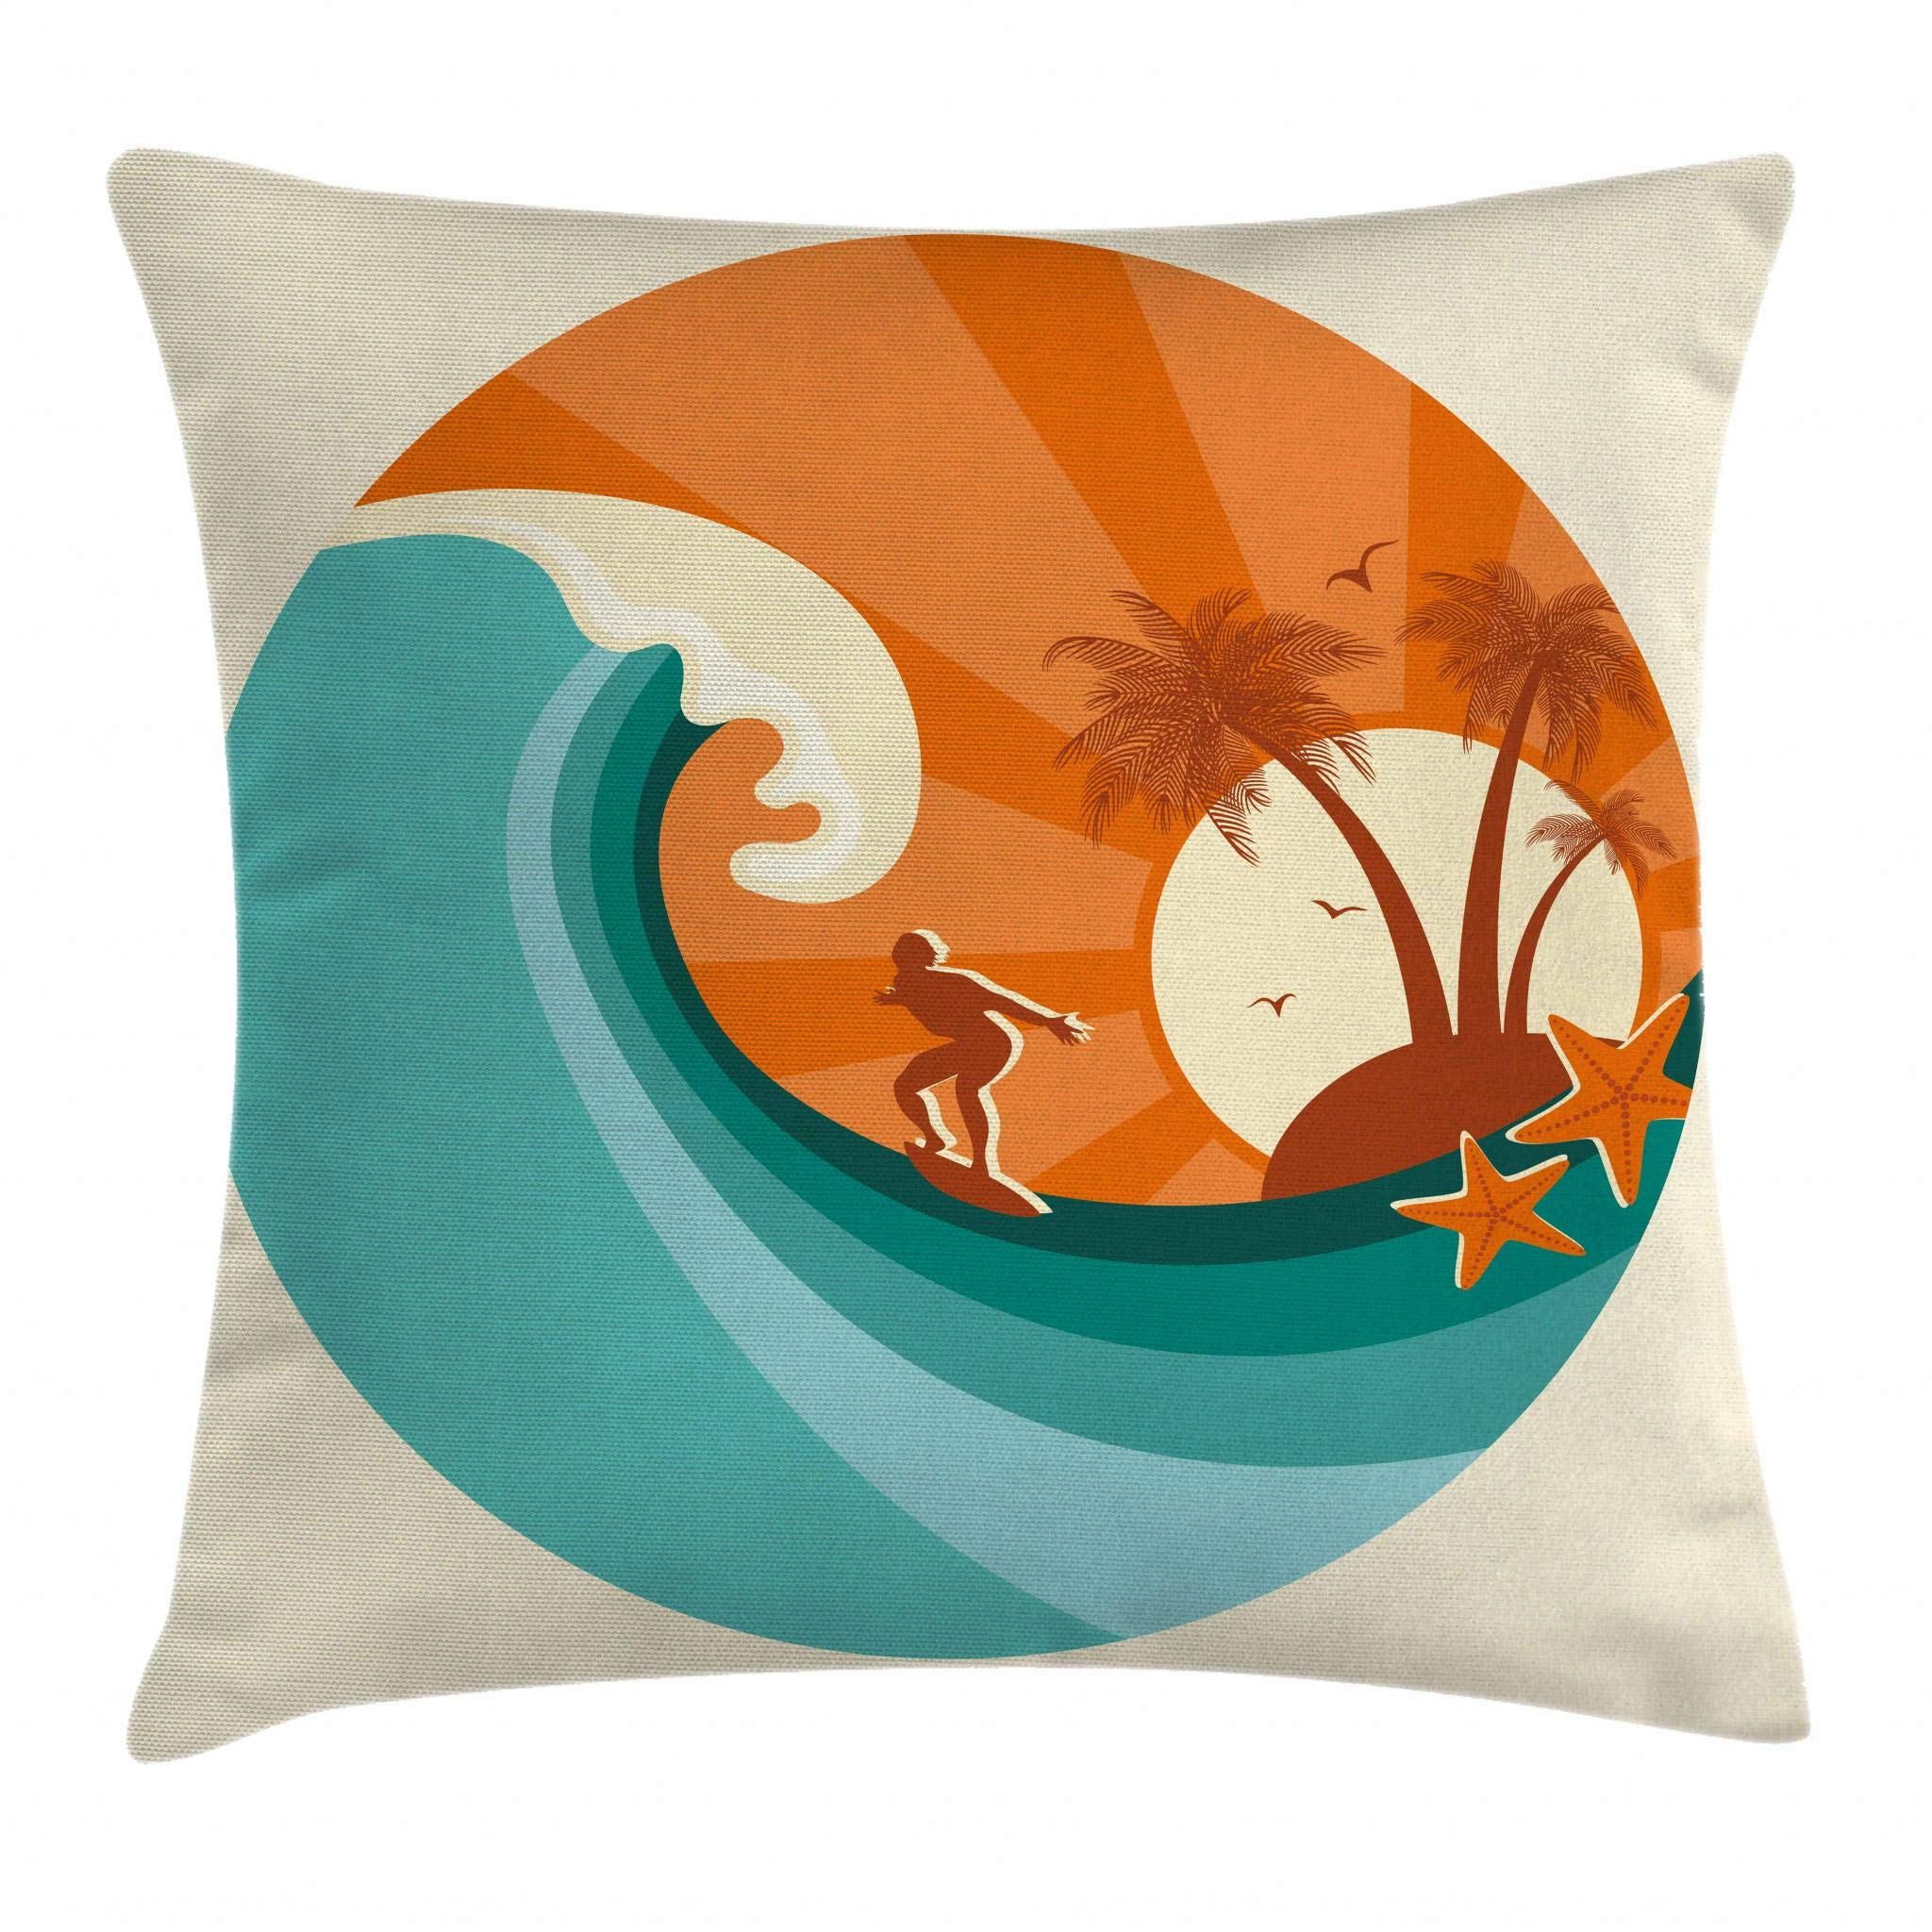 Ambesonne Ride The Wave Throw Pillow Cushion Cover, Retro Man Surfing at Beach Island Coconut Palm Trees Illustration, Decorative Square Accent Pillow Case, 18 X 18 Inches, Orange Teal Ivory